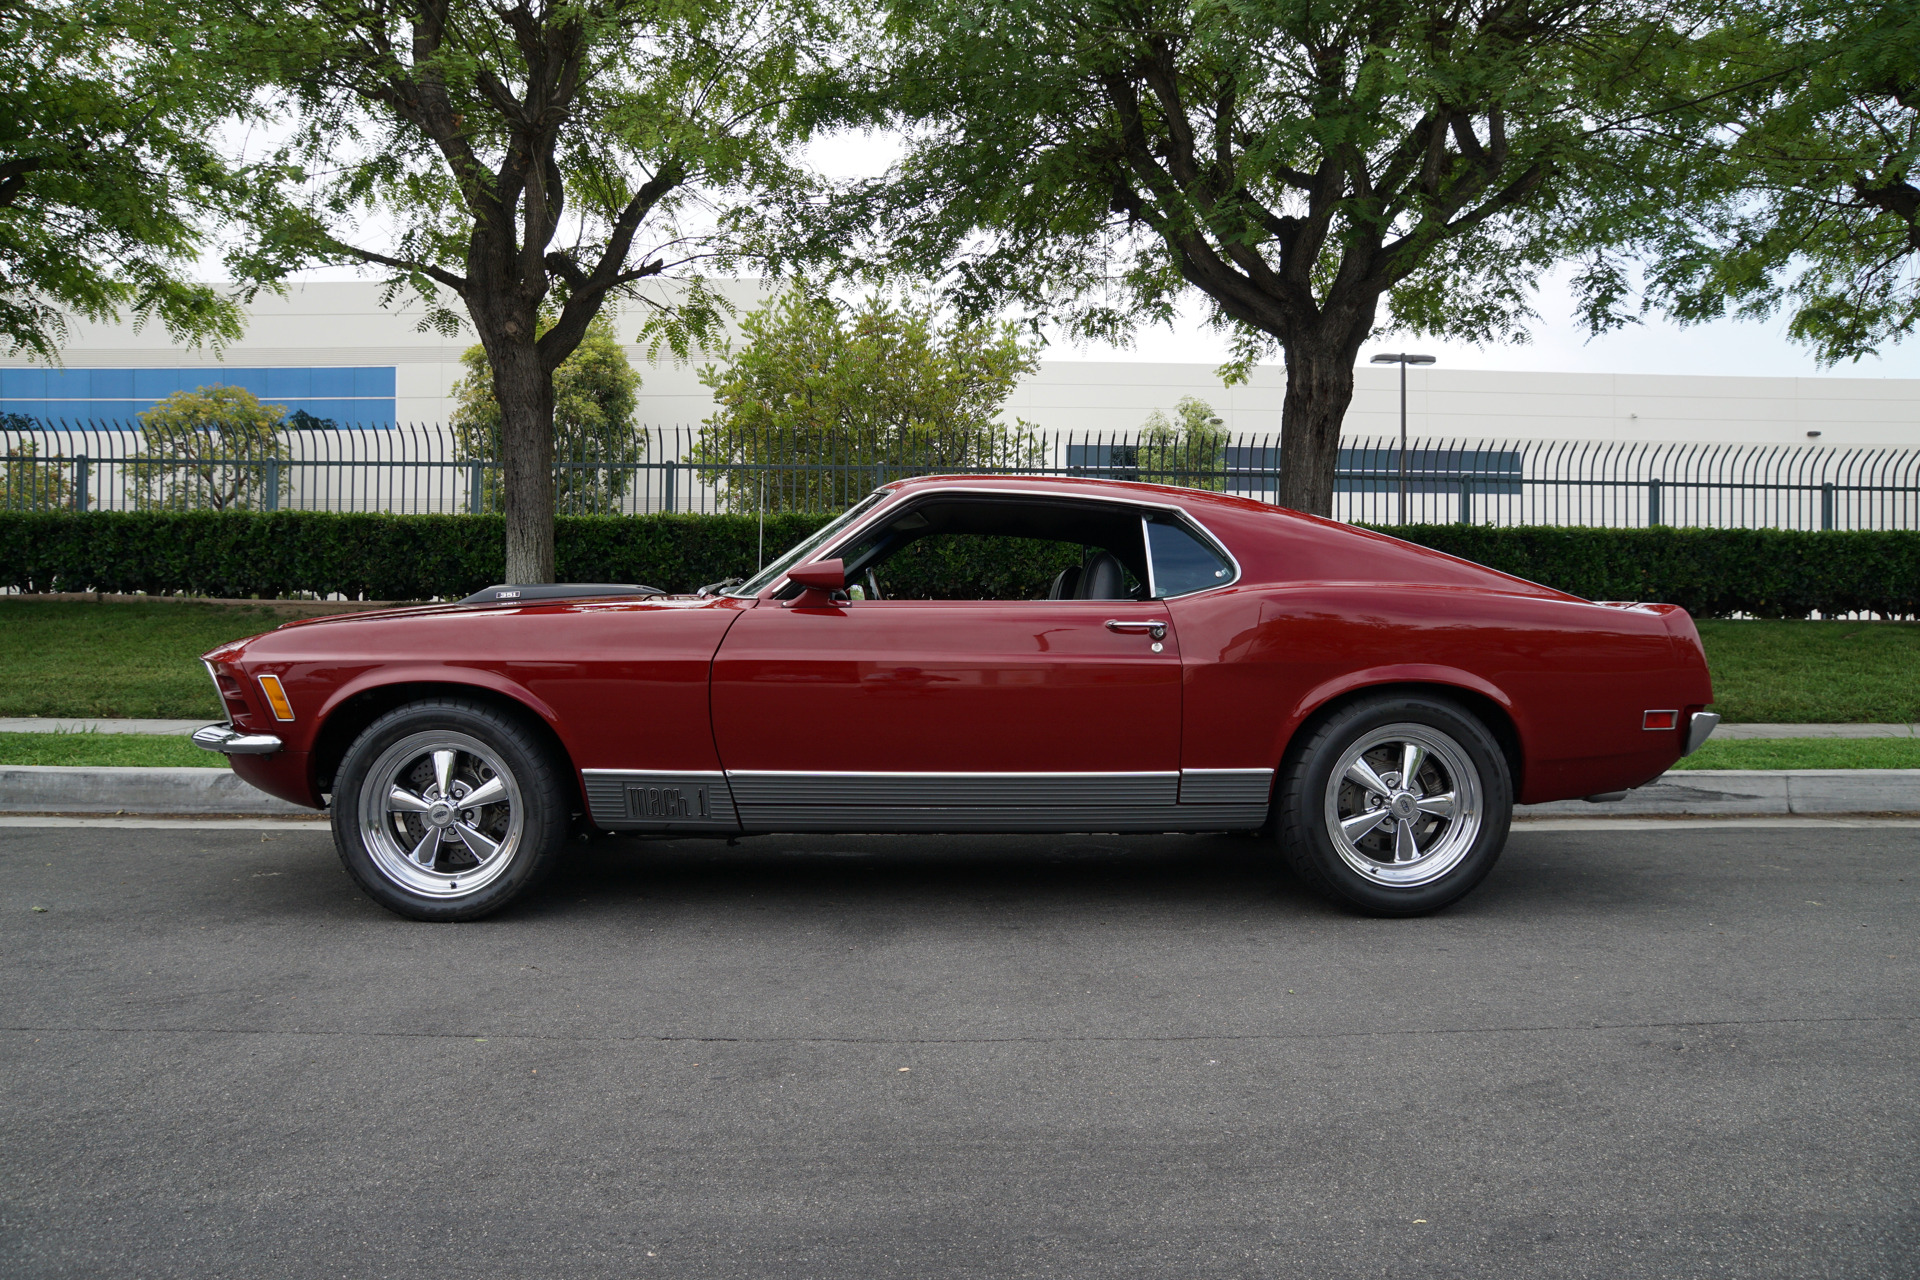 Ford Mustang 1970 Fastback For Sale Uk